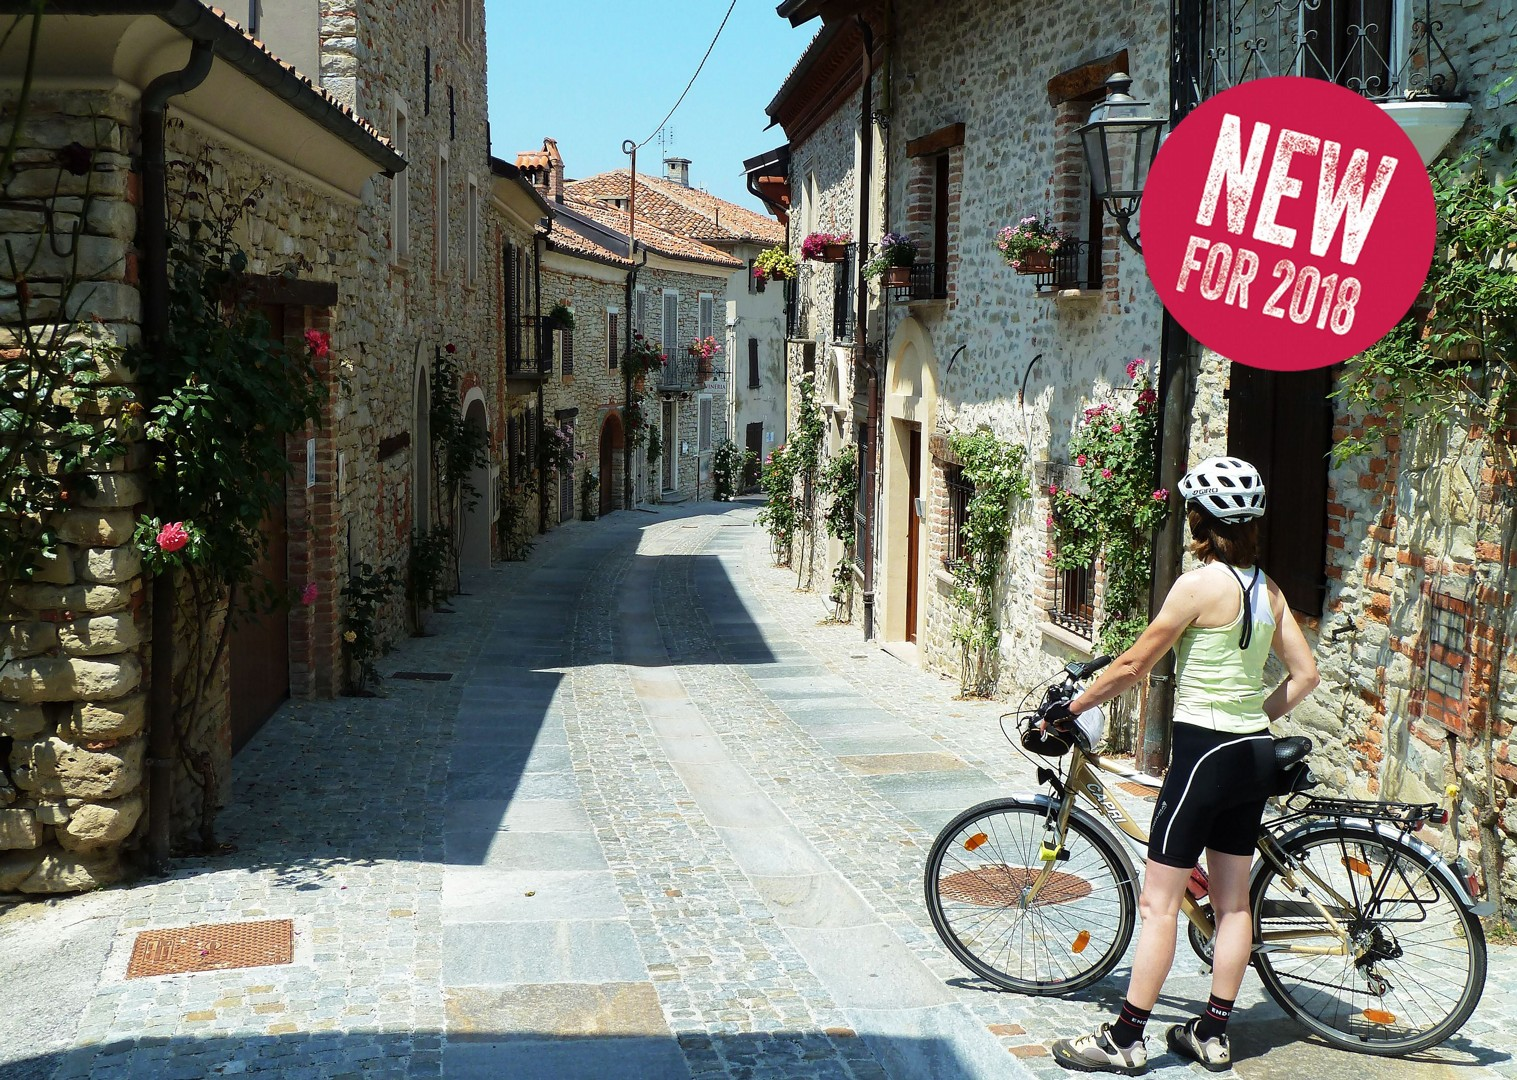 italy-piemontes-vineyards-and-views-self-guided-leisure-cycling-holiday.jpg - Italy - Piemonte's Vineyards and Views - Leisure Cycling